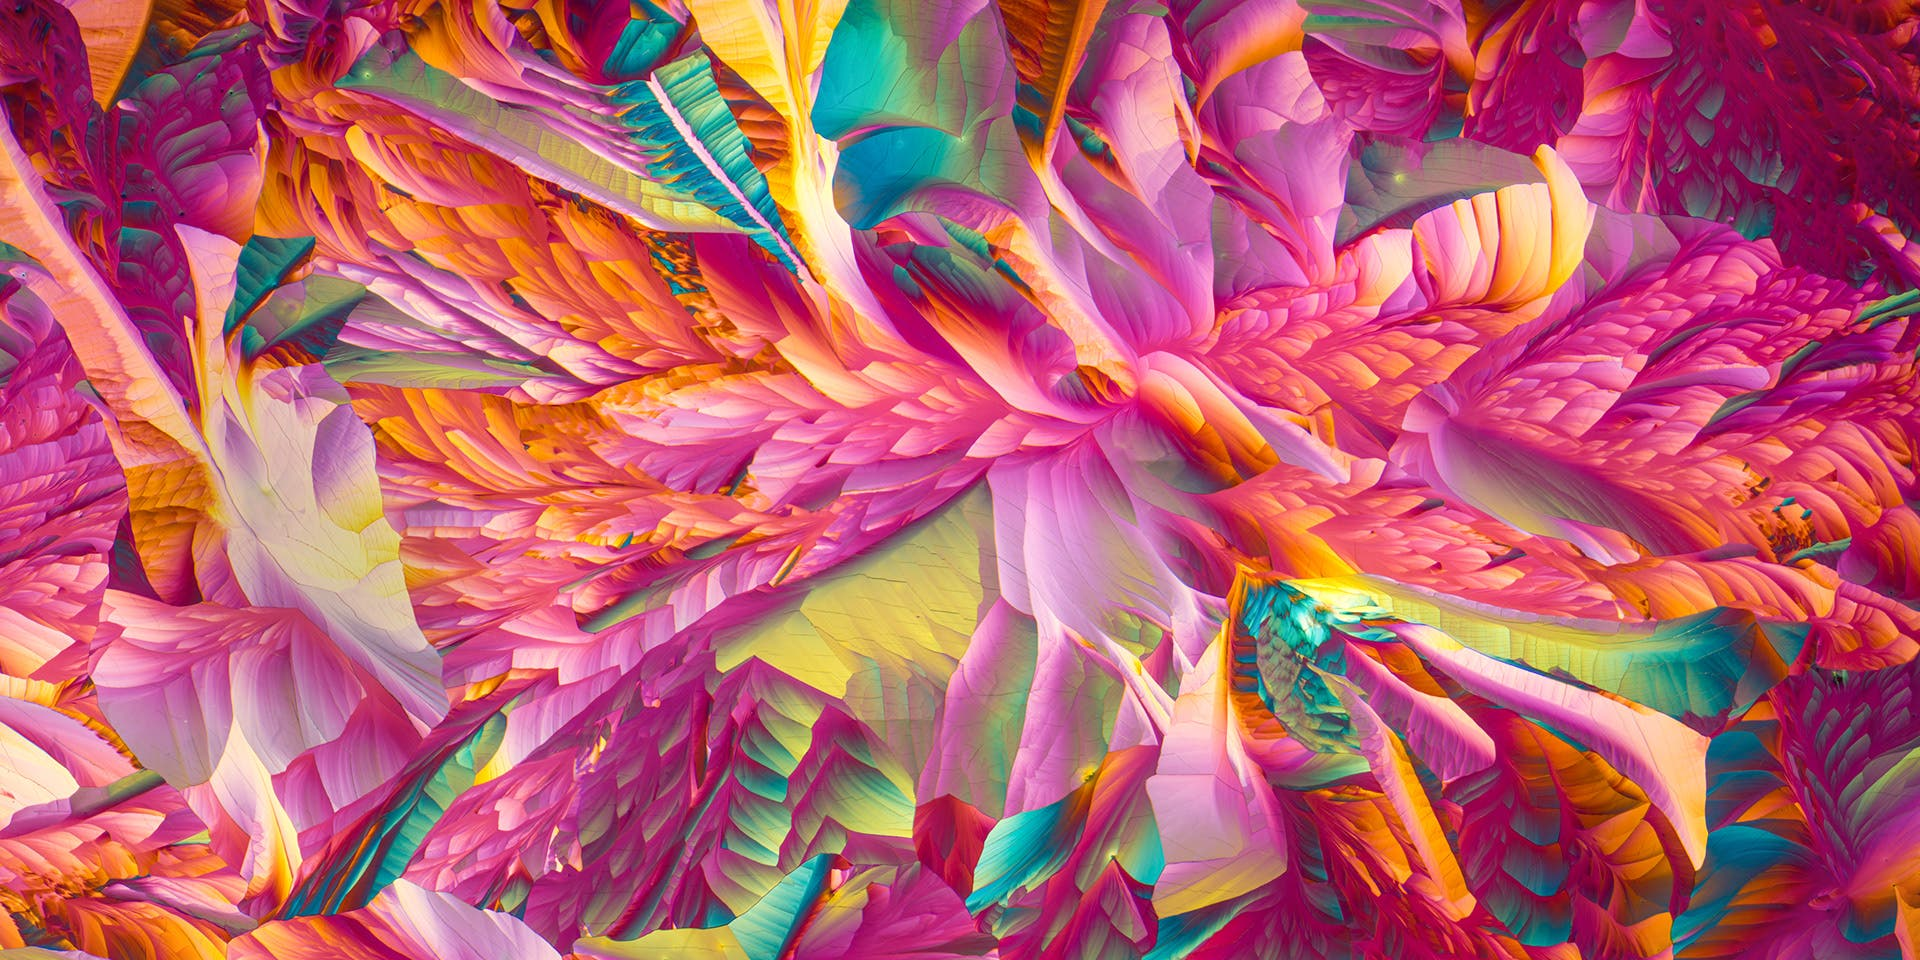 Justin Zoll Photographed the Beauty of Crystallized Amino Acids